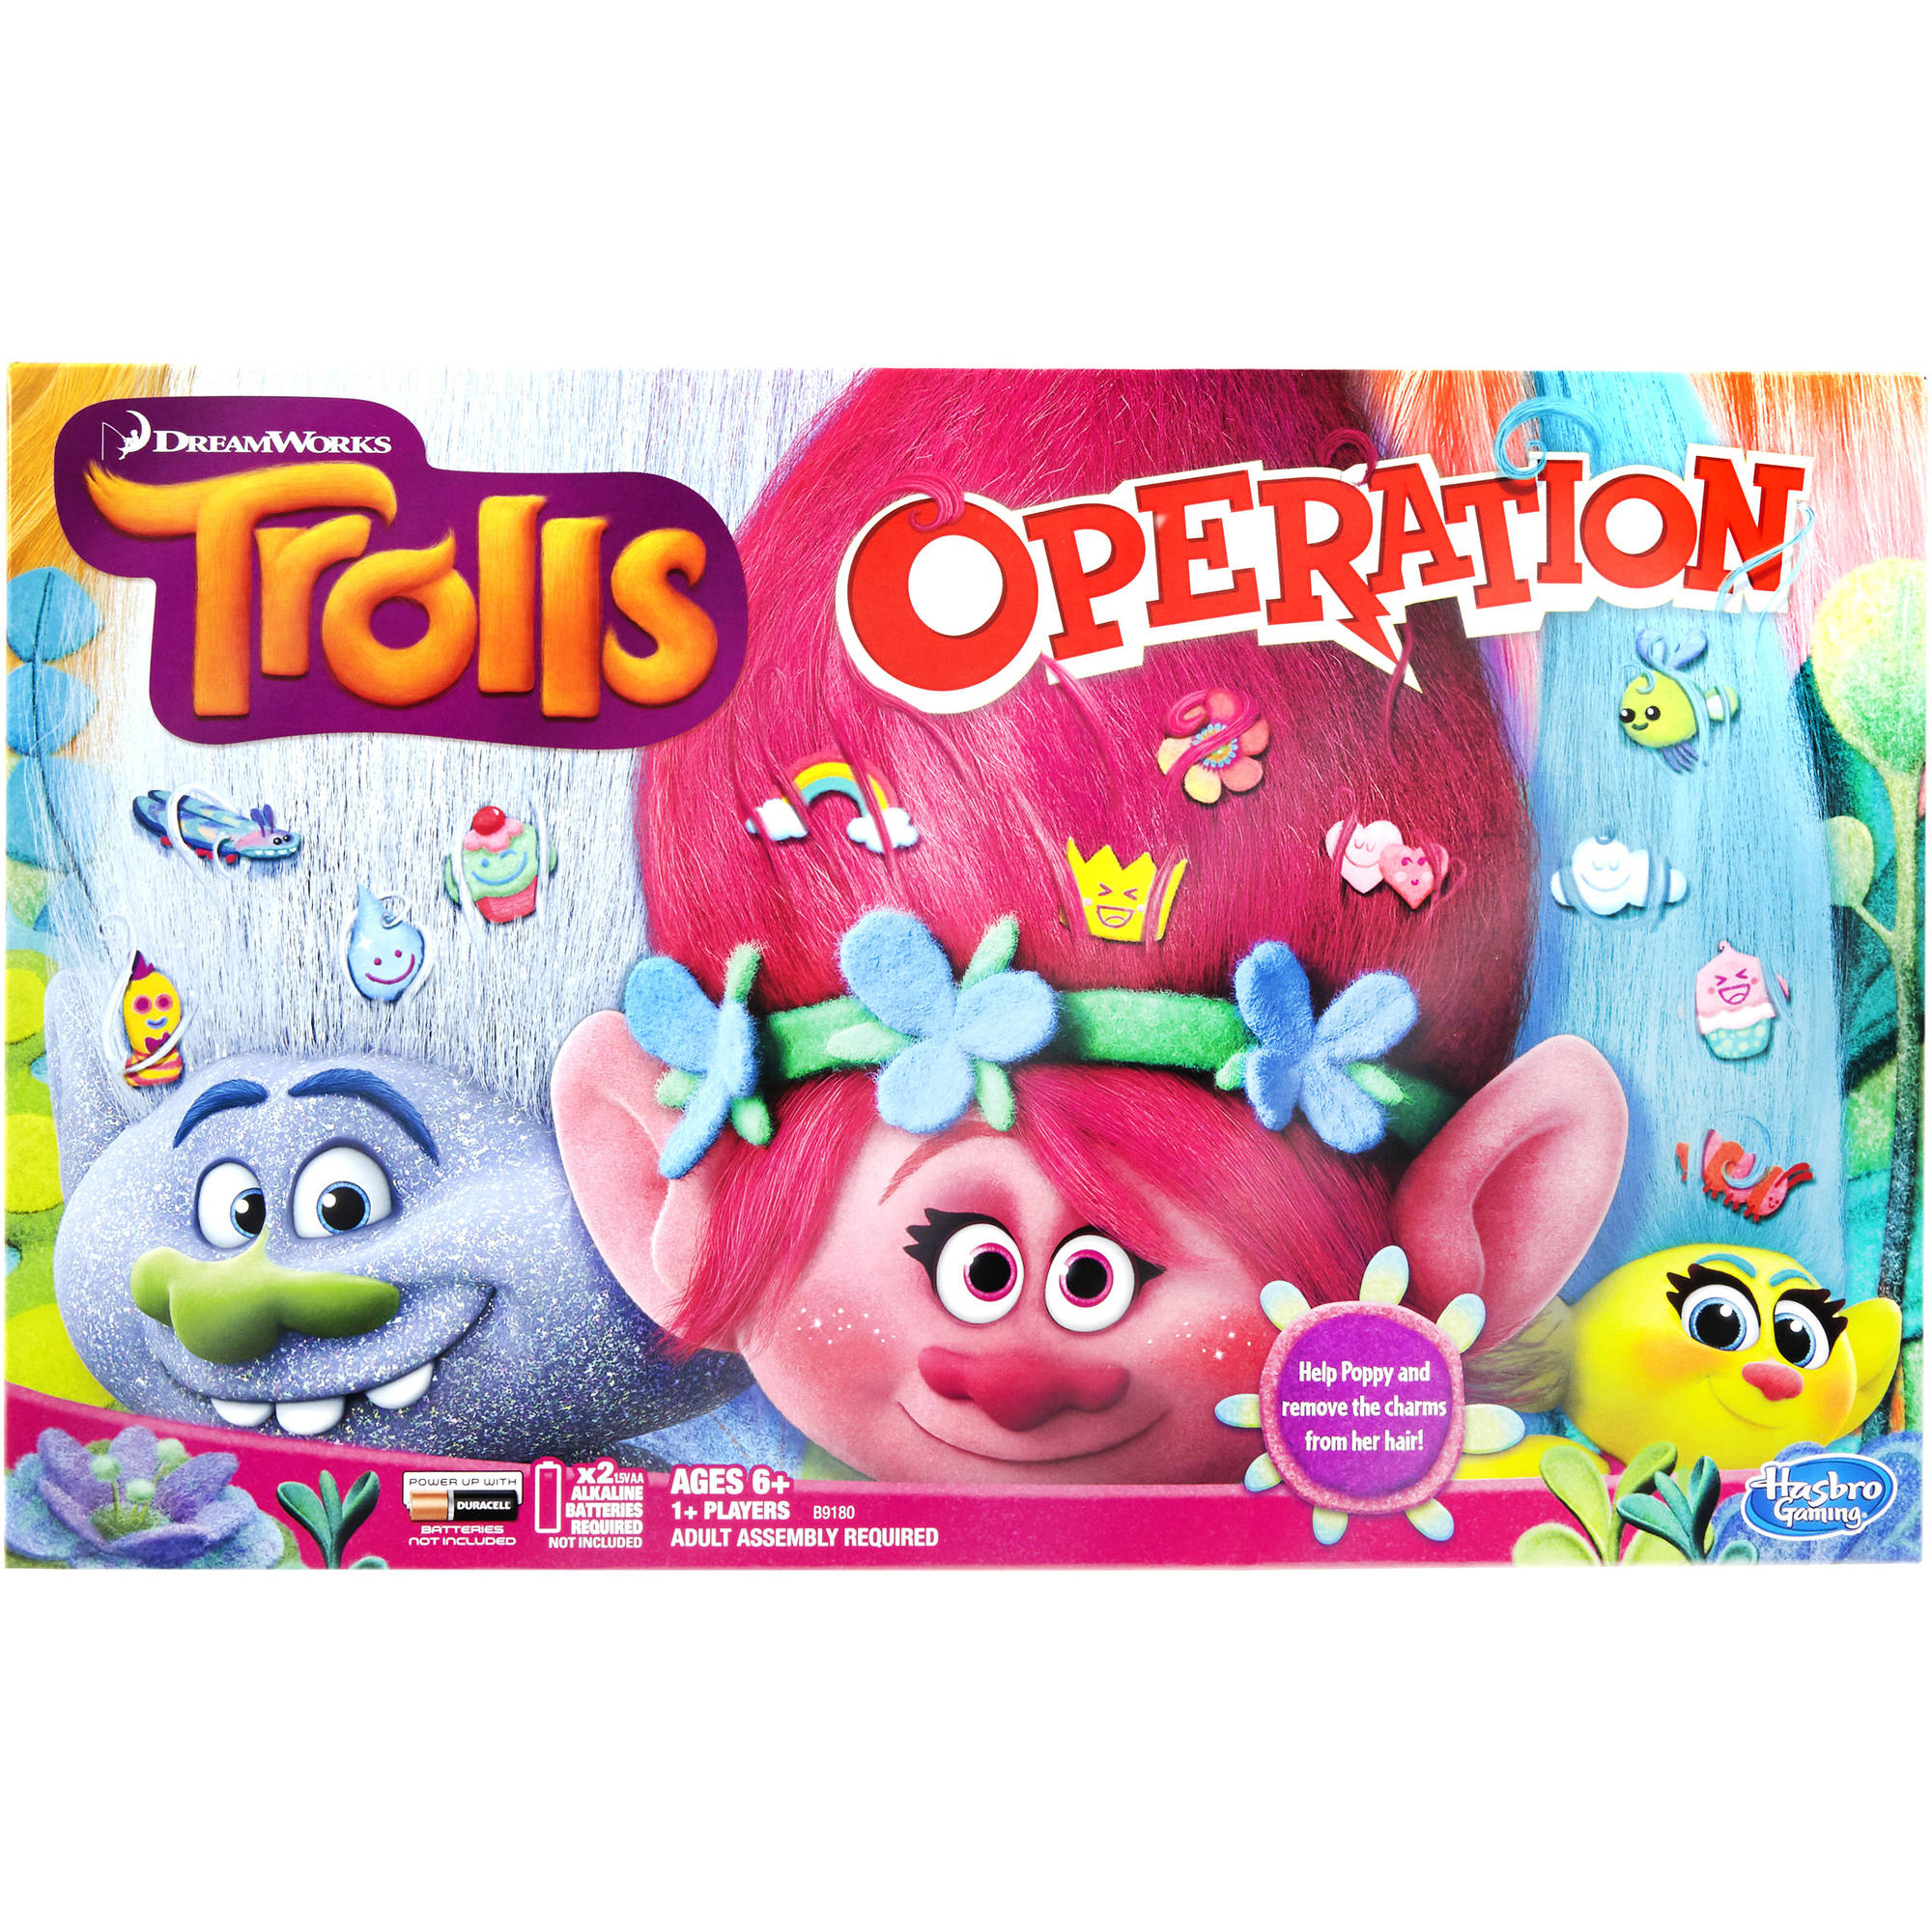 DreamWorks Trolls Operation Game by Hasbro